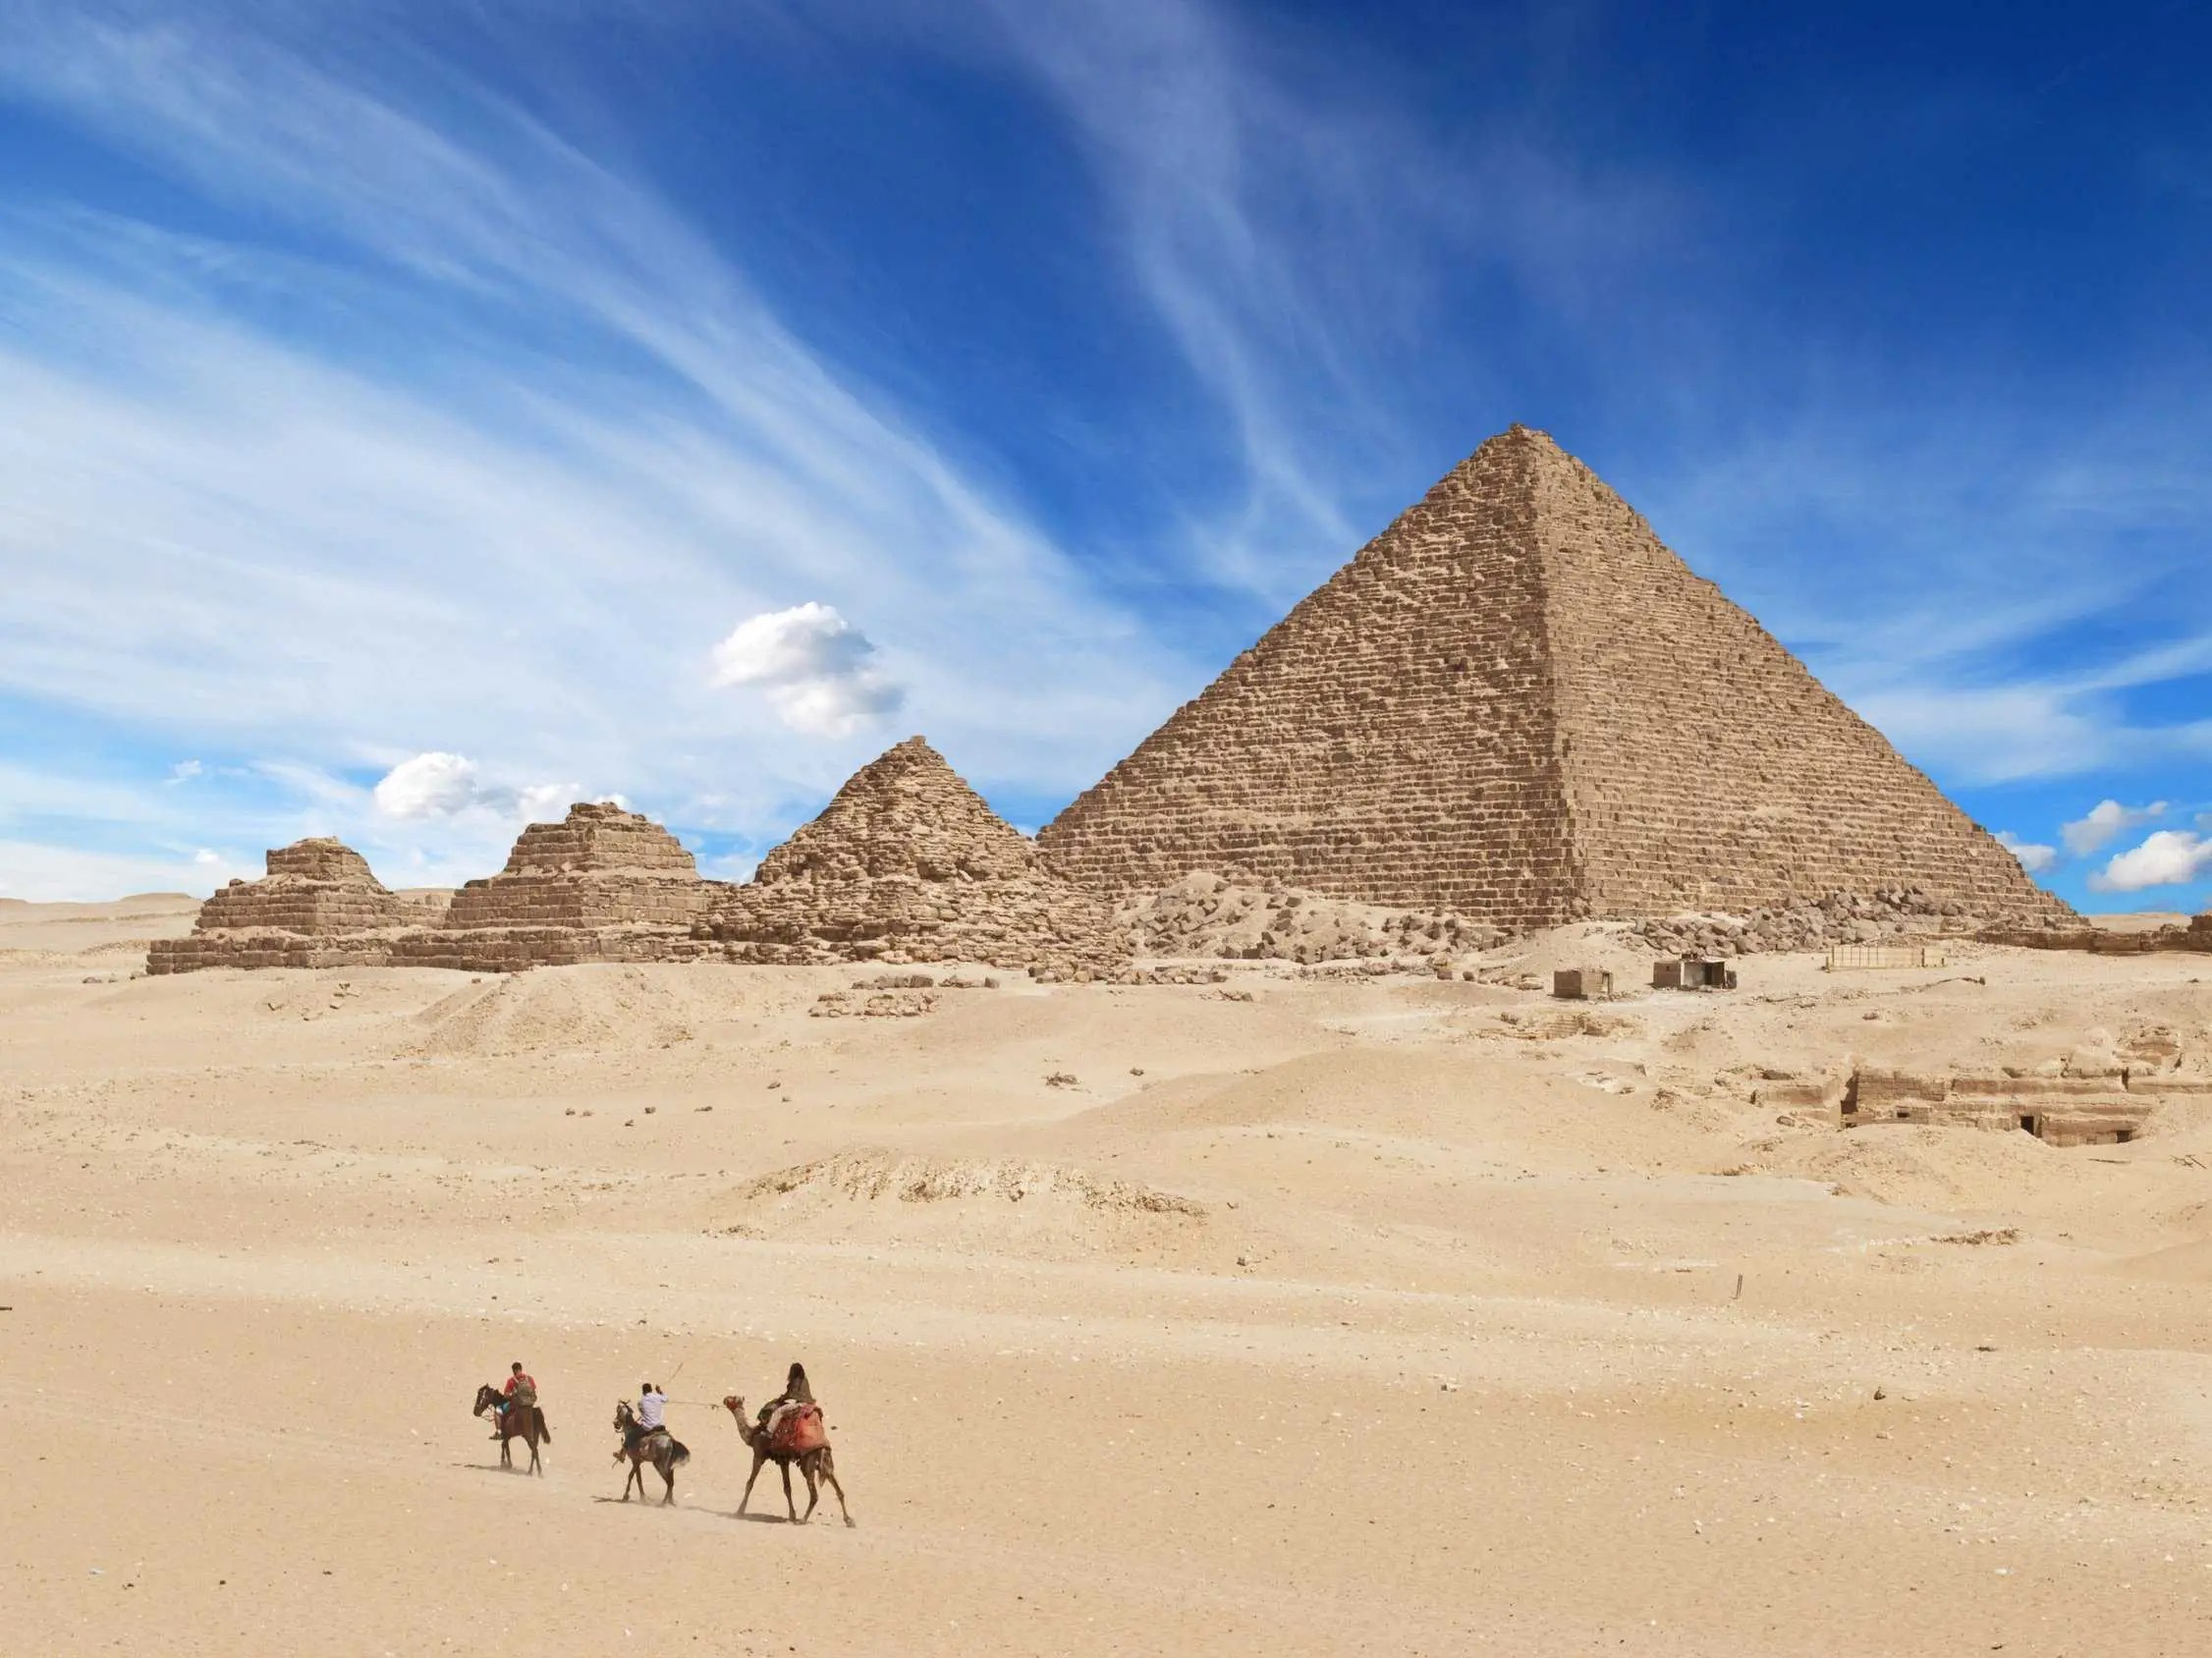 Visit the Great Pyramids of Giza in Egypt, the only one of the seven ancient world wonders still in existence.